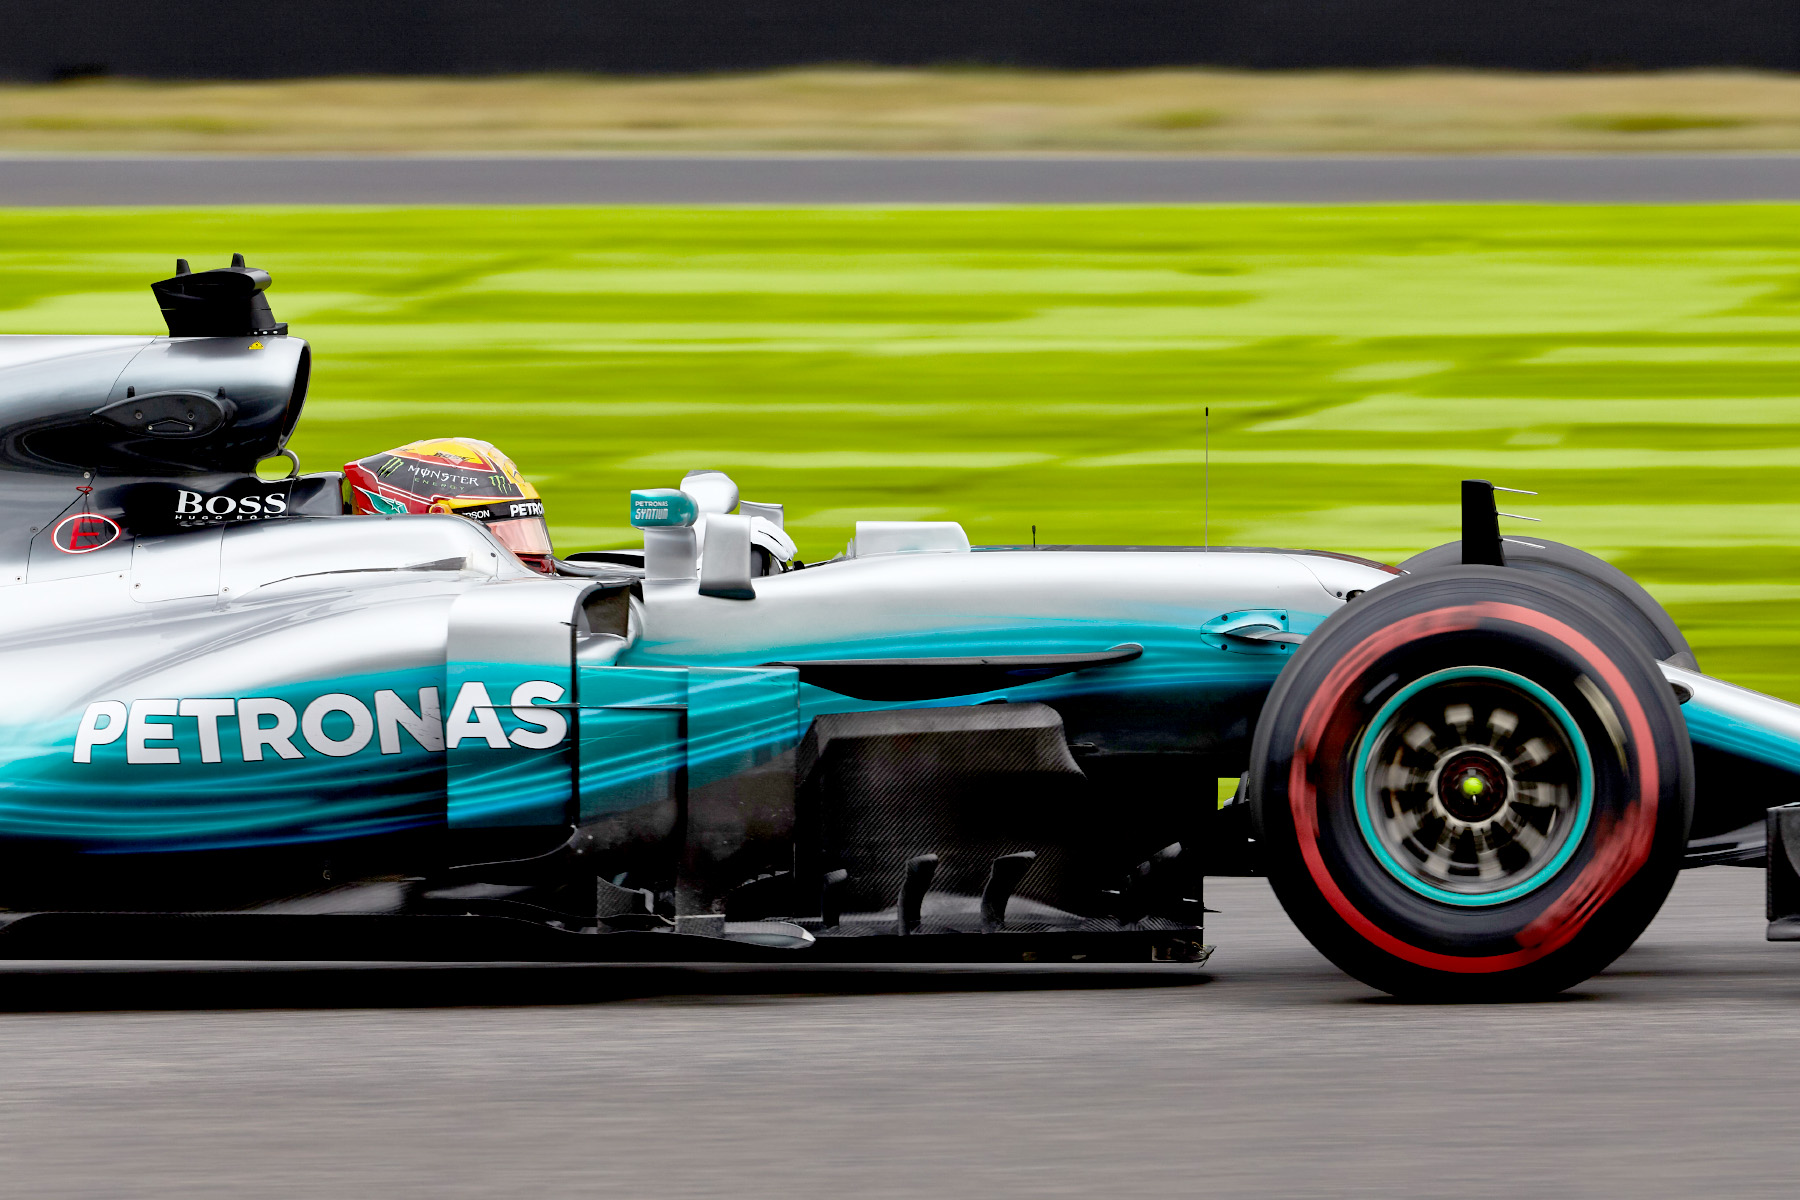 Lewis Hamilton cruises at the 2017 Japanese Grand Prix.